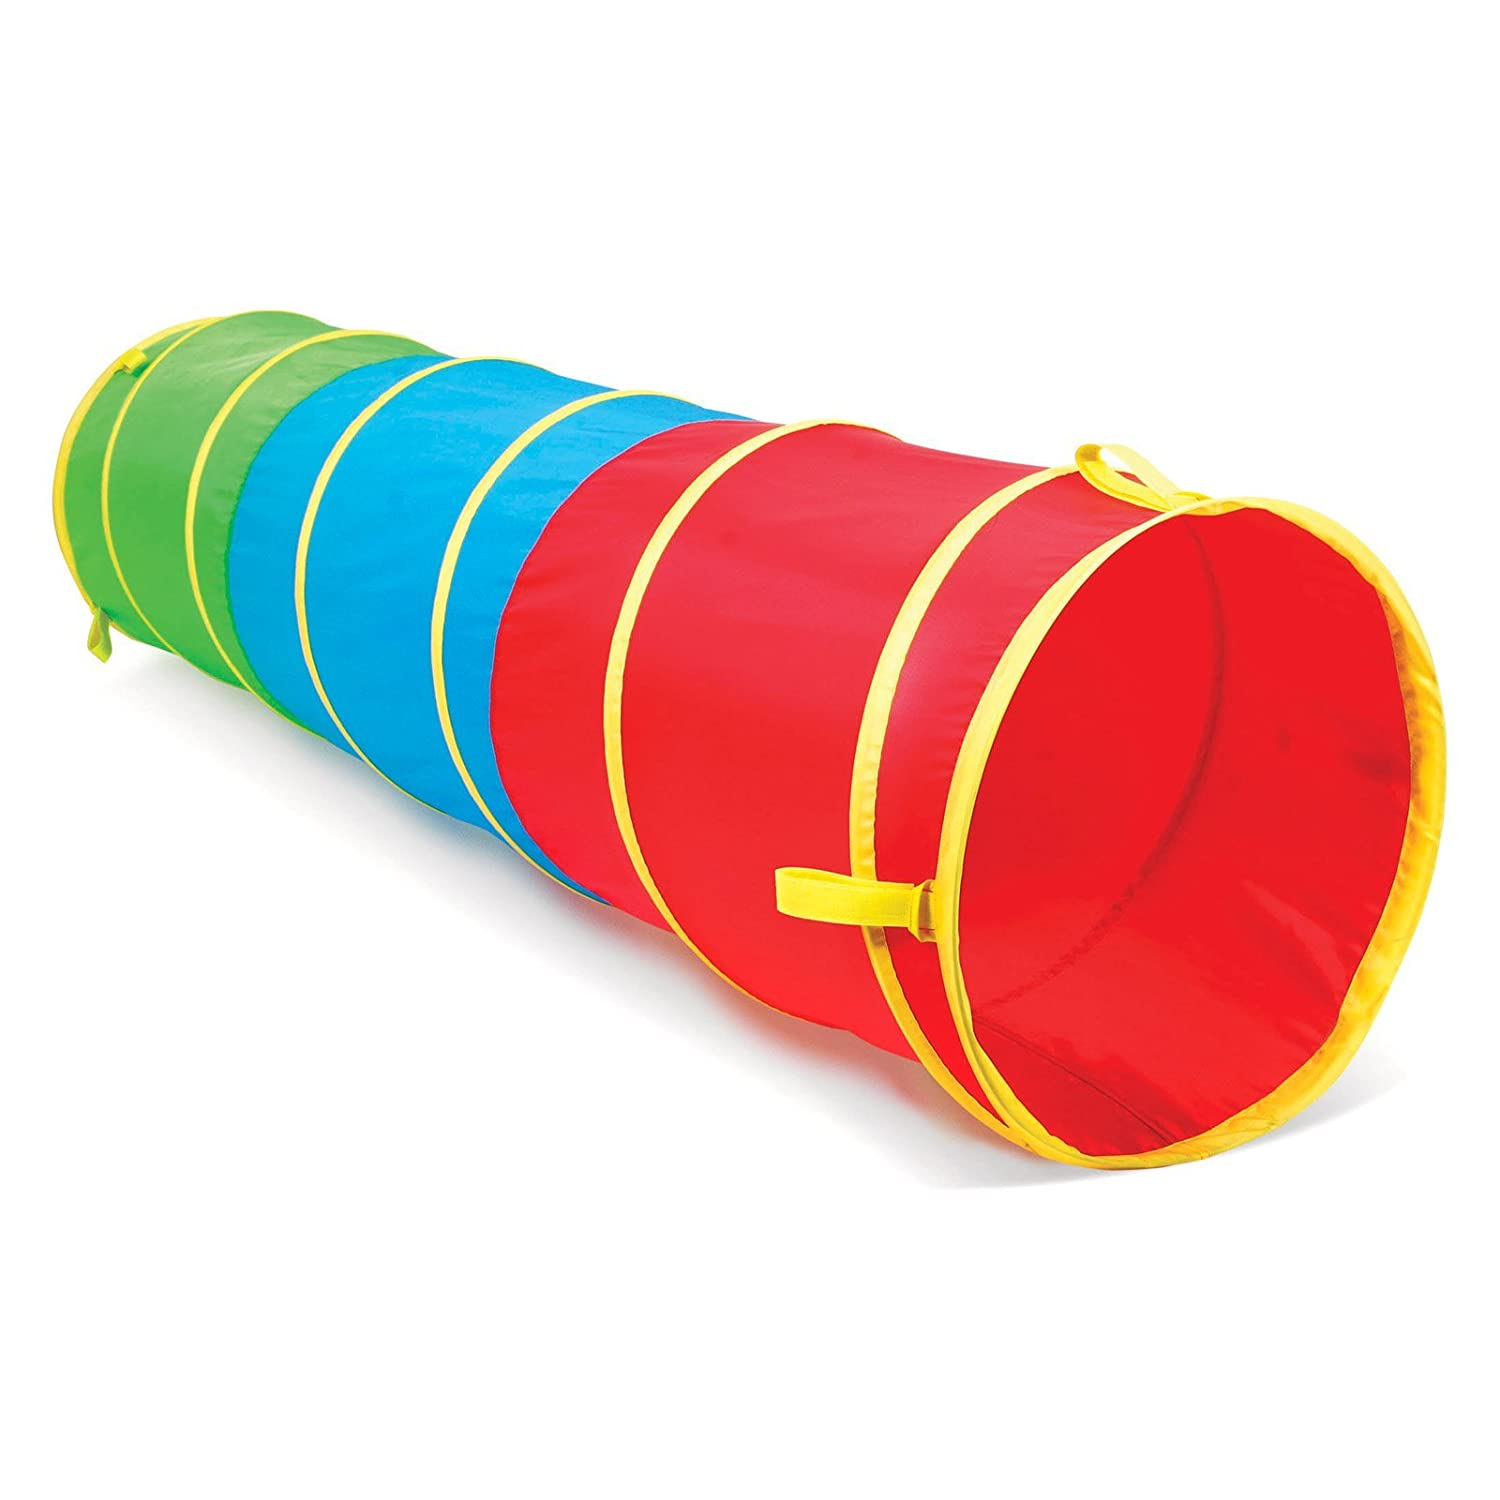 Playhut Play Tunnel, 6' 6' Inc. 26700-4R